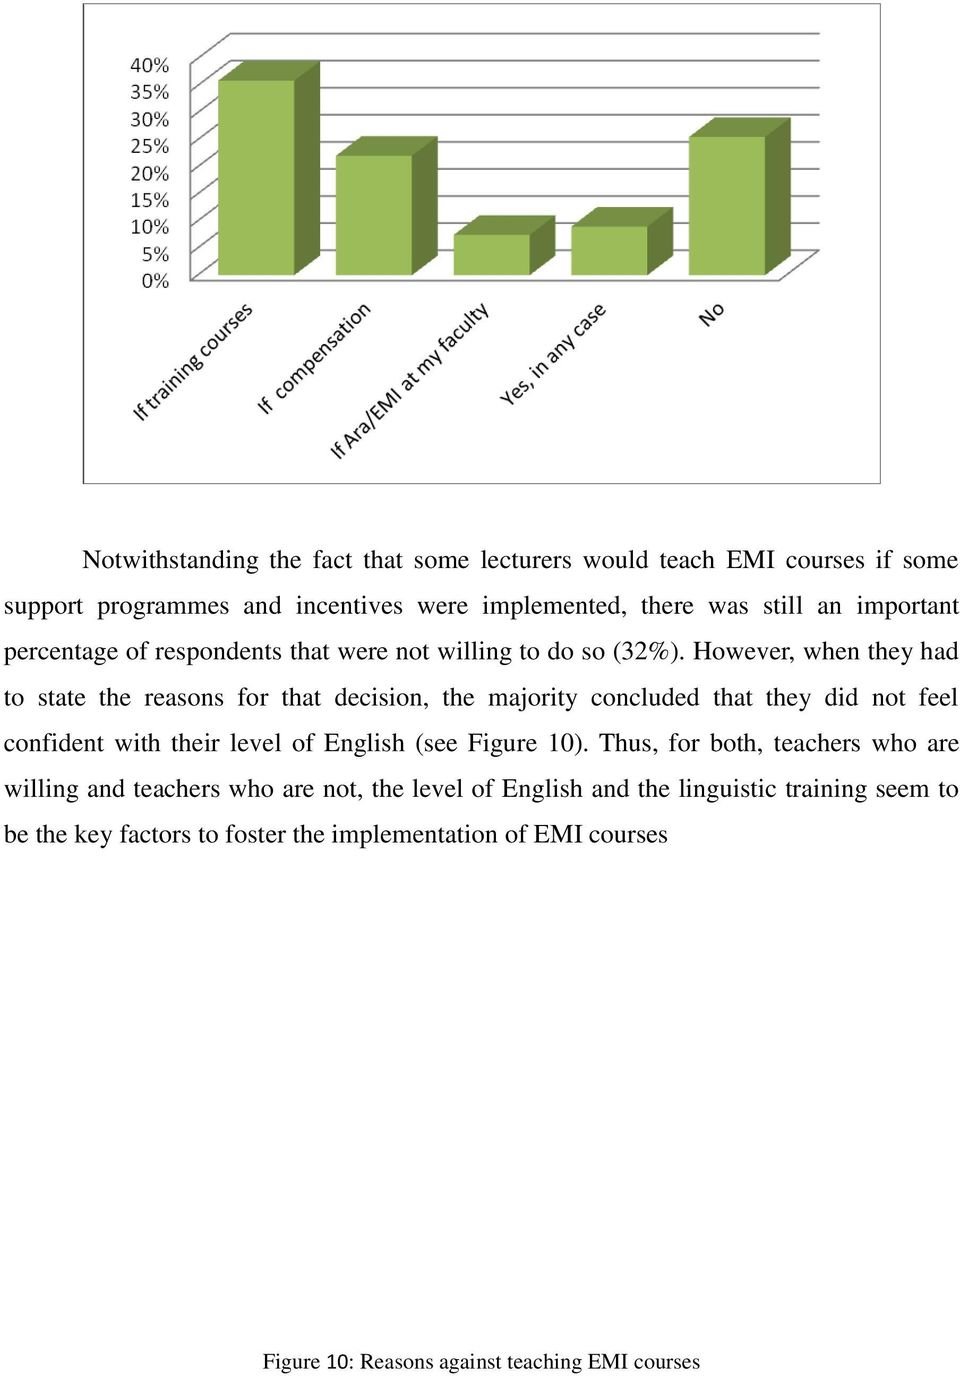 However, when they had to state the reasons for that decision, the majority concluded that they did not feel confident with their level of English (see